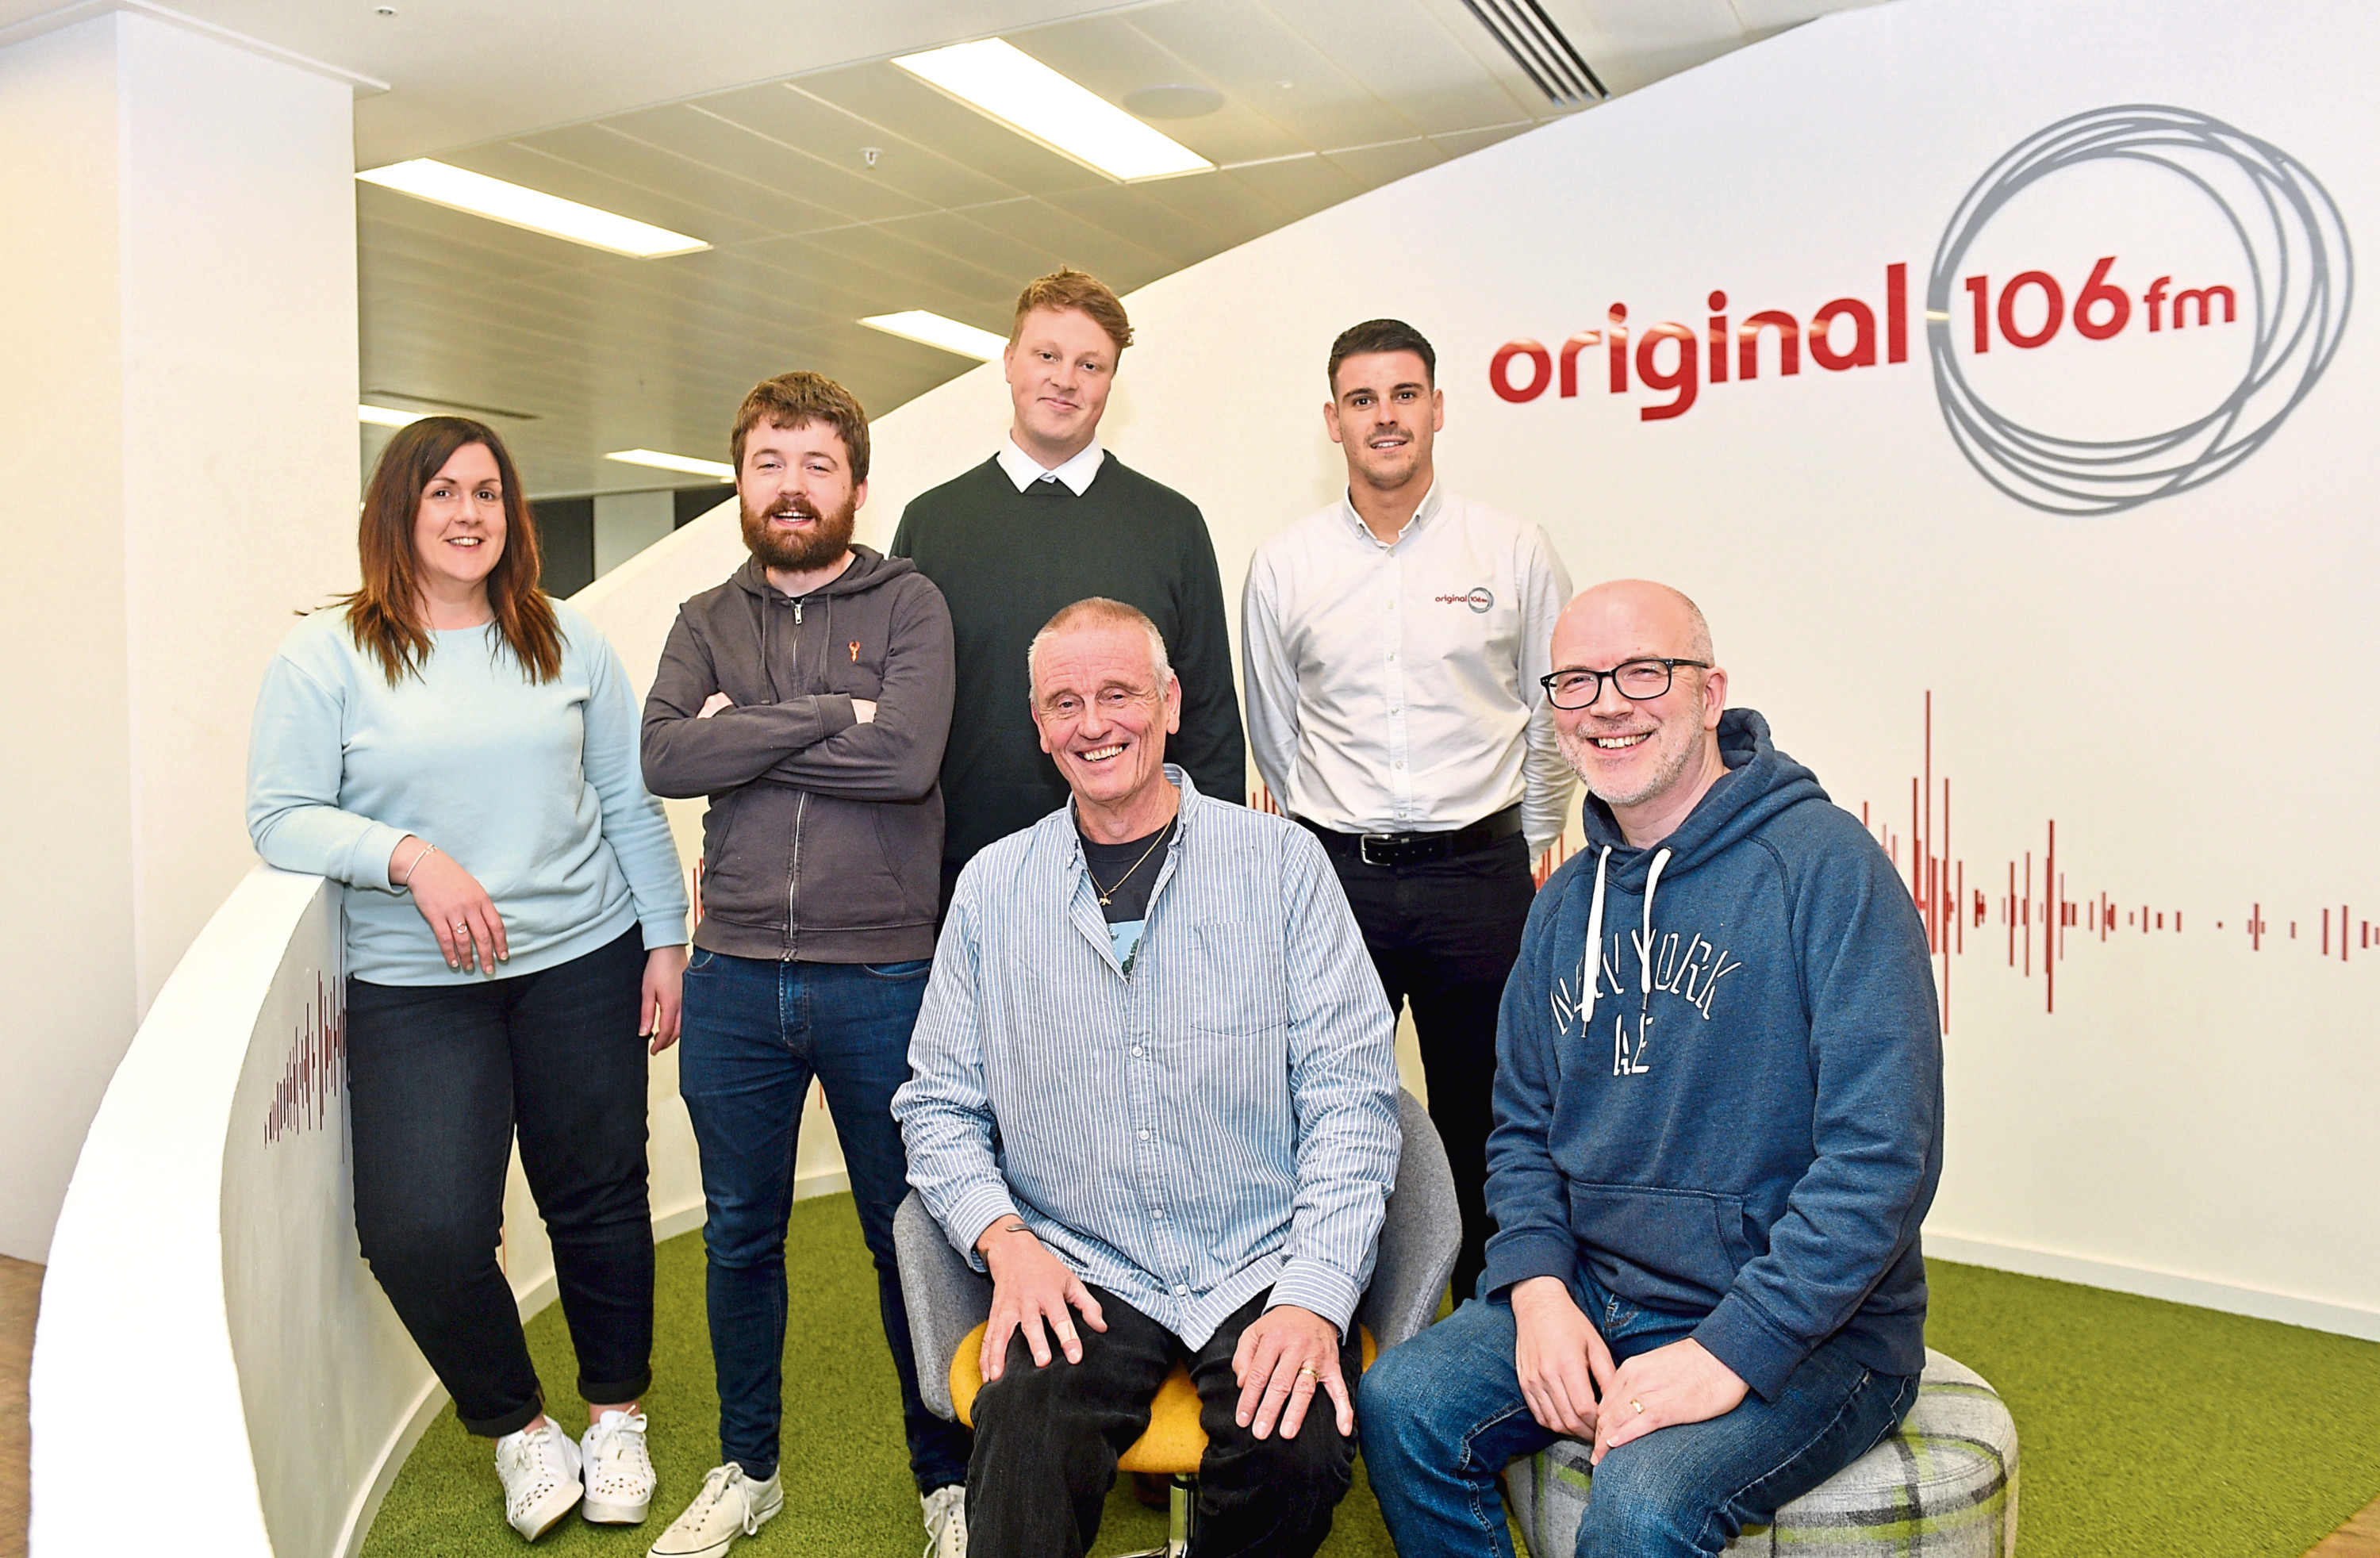 Members of the Original 106fm team with Dave Simmers from CFine at the Original studios as part of the launch of Original's Christmas appeal